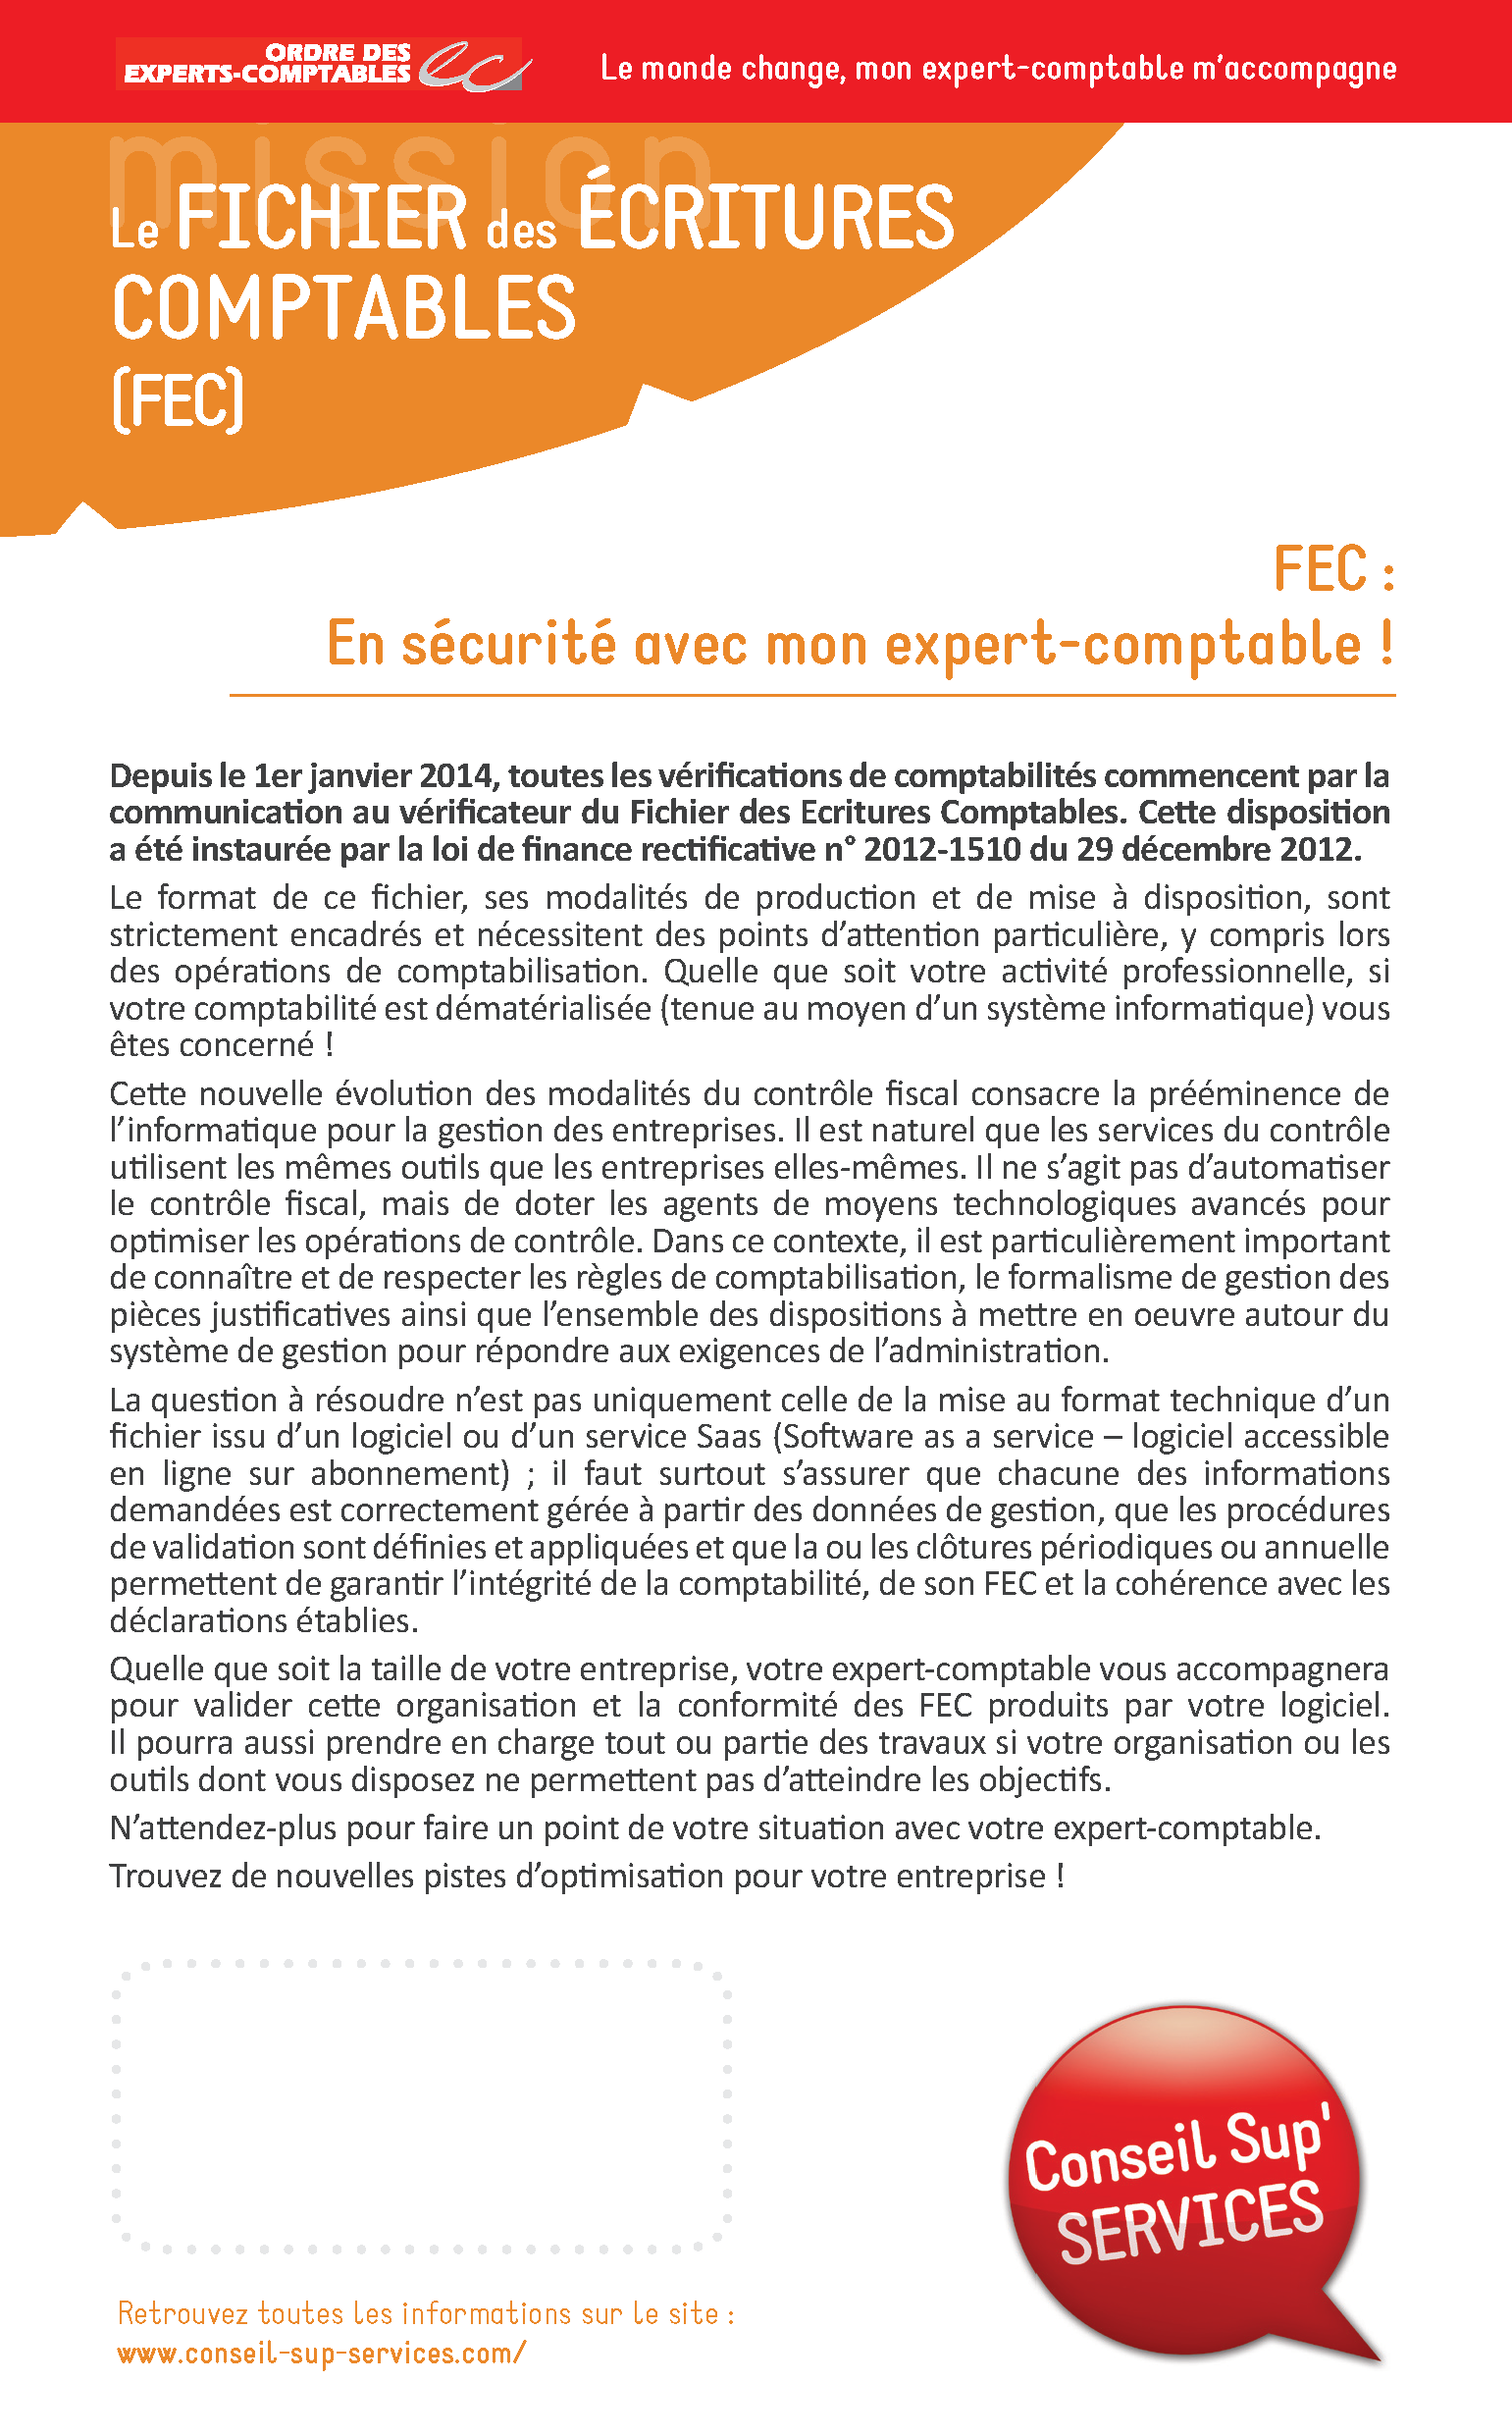 societe d'expertise comptable Salon-de-Provence-comptable Salon-de-Provence-cabinet d'expertise comptable Salon-de-Provence-expert comptable Salon-de-Provence